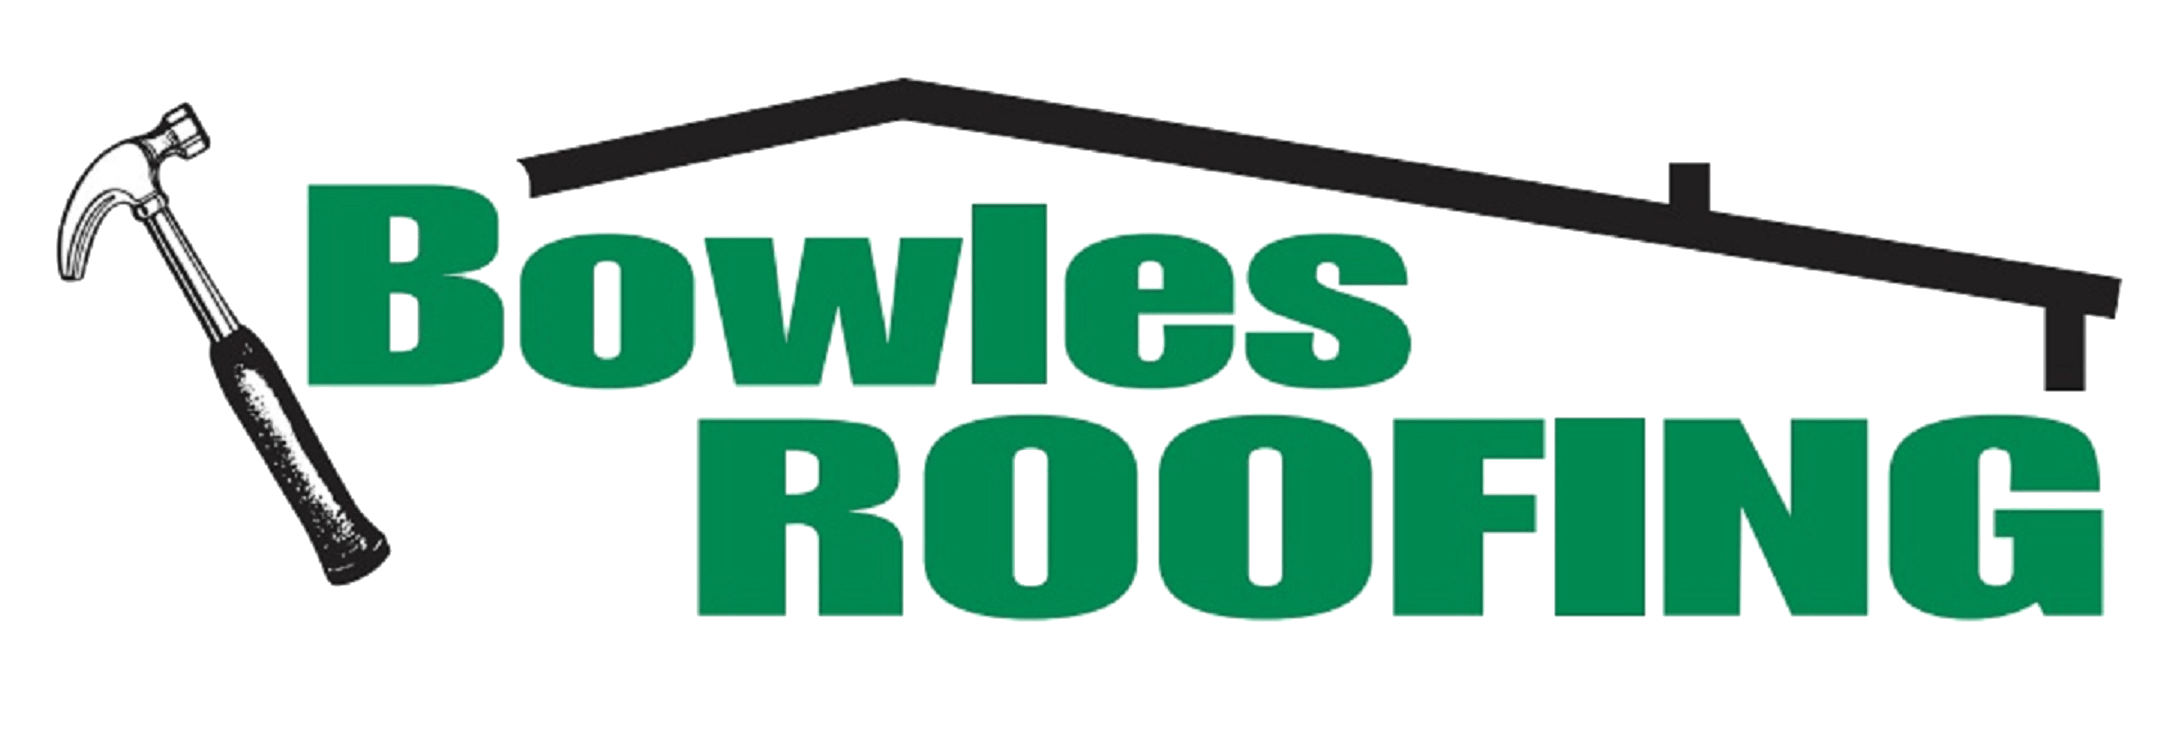 Bowles Roofing Tallahassee